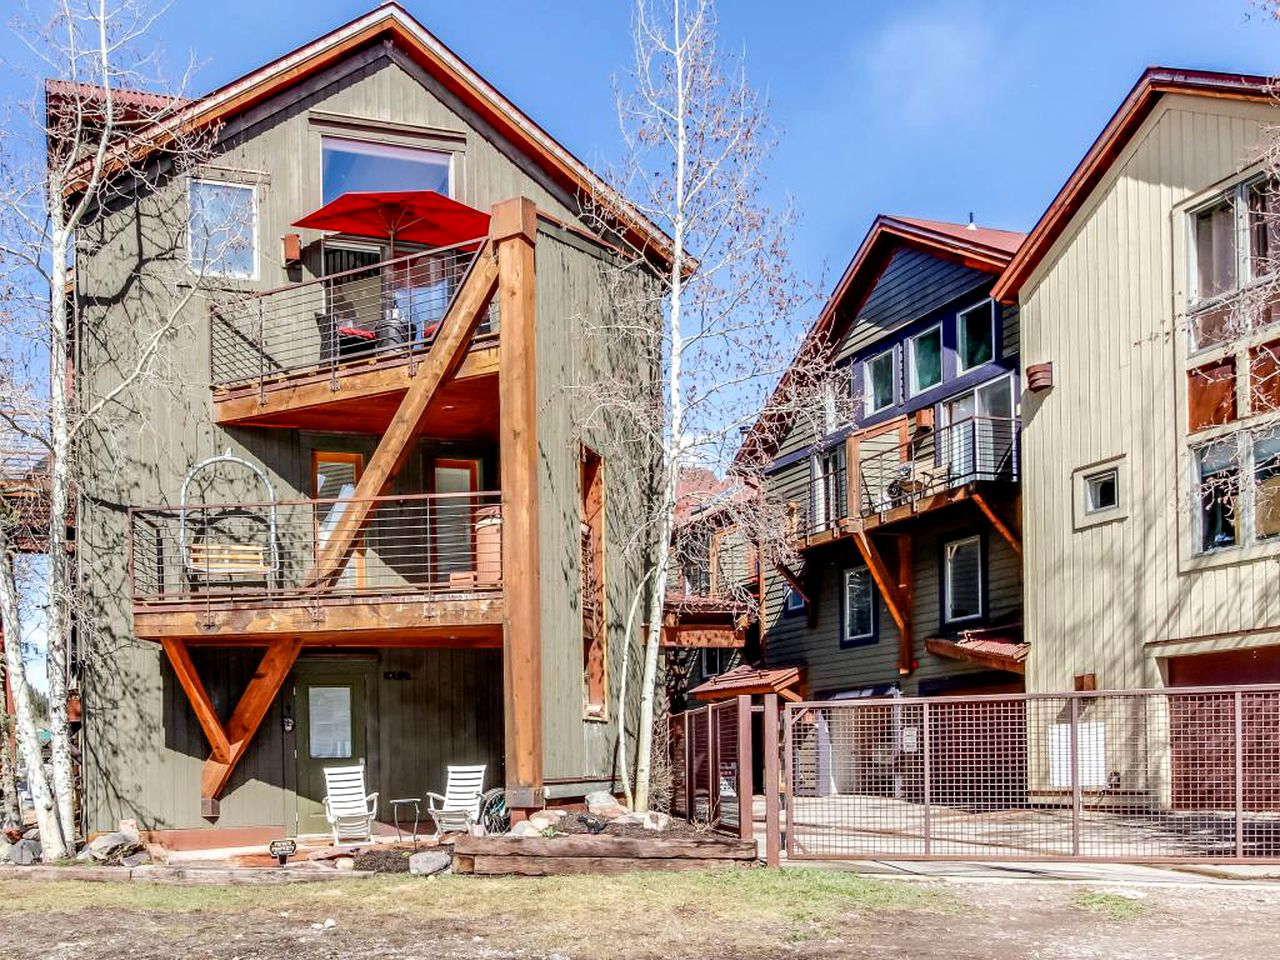 Cabins (Telluride, Colorado, United States)